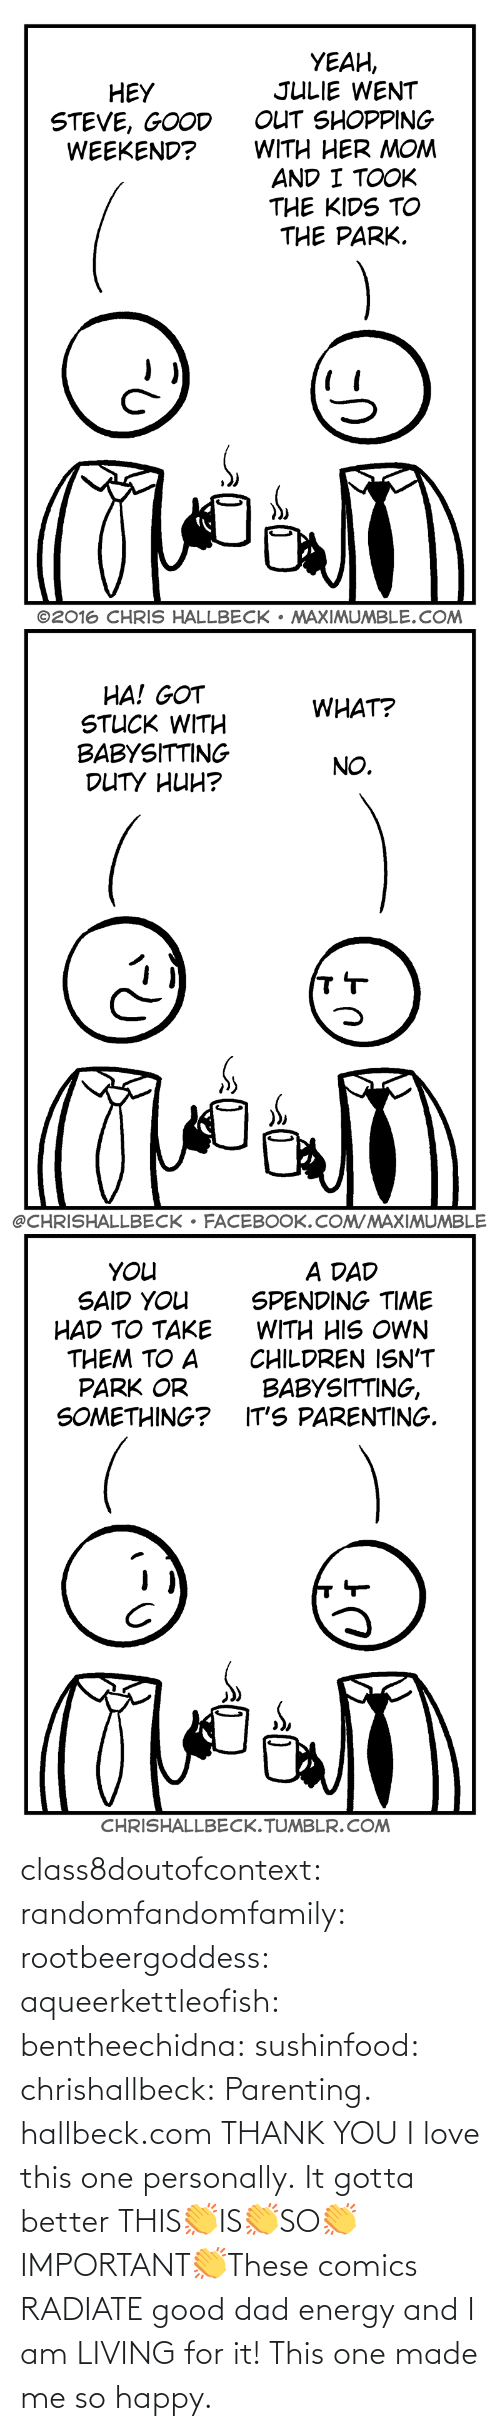 Happy: class8doutofcontext: randomfandomfamily:  rootbeergoddess:  aqueerkettleofish:  bentheechidna:  sushinfood:  chrishallbeck:  Parenting. hallbeck.com  THANK YOU  I love this one personally.    It gotta better   THIS👏IS👏SO👏IMPORTANT👏These comics RADIATE good dad energy and I am LIVING for it!    This one made me so happy.